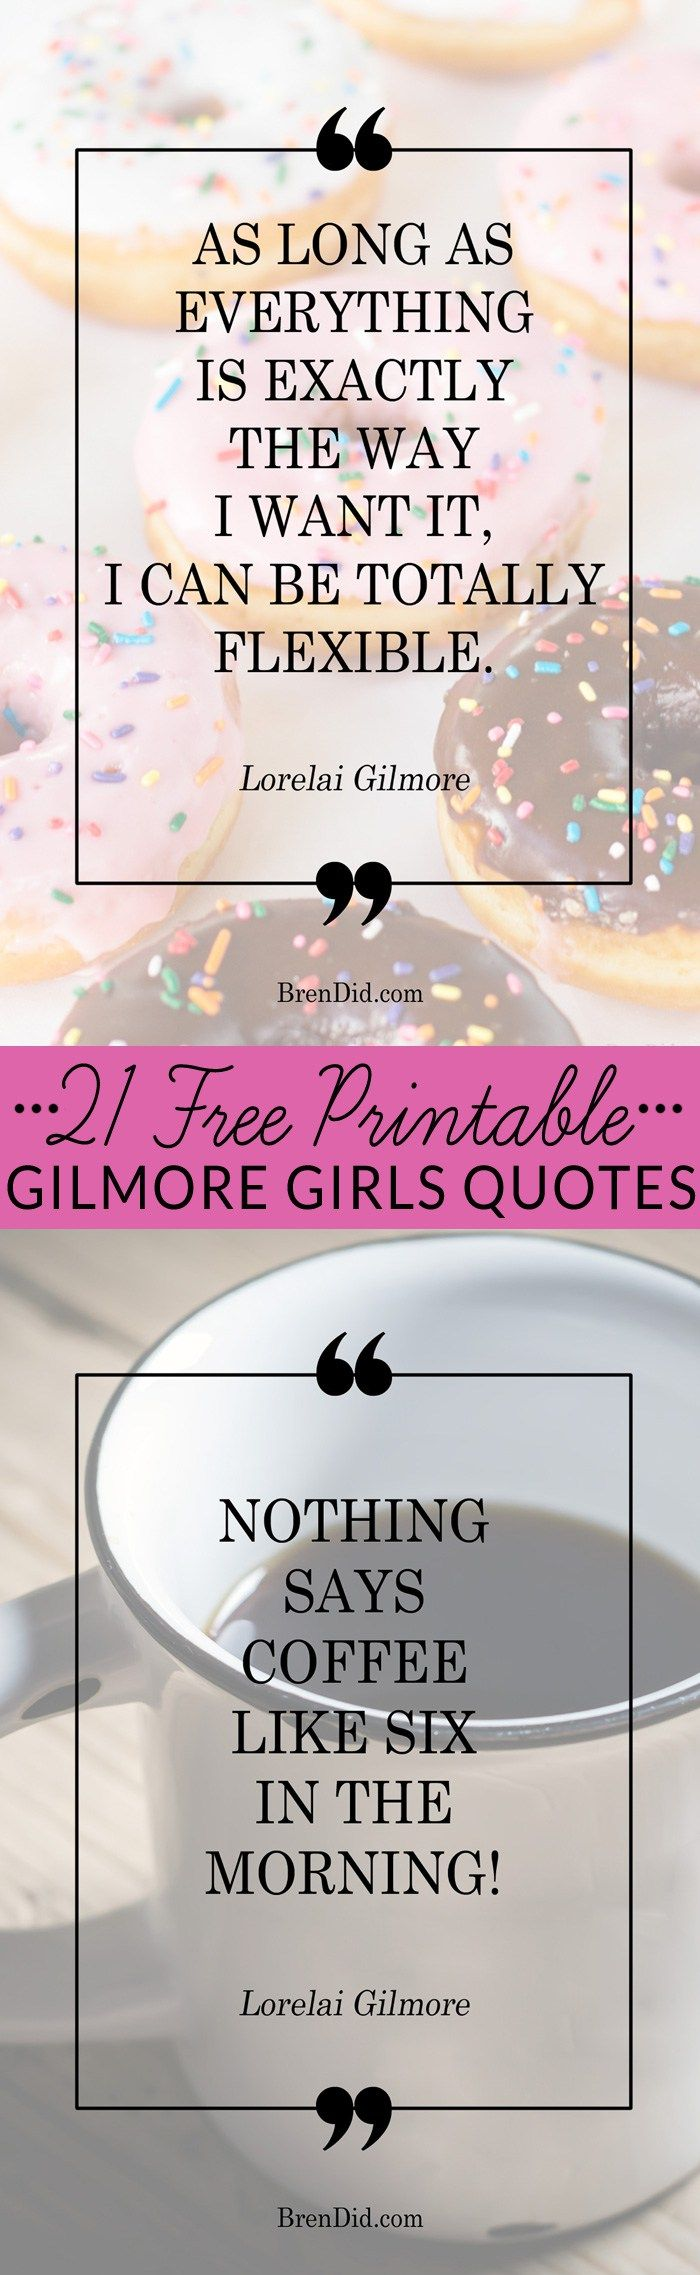 21 free printable Gilmore Girls quotes that will make you remember why you love Rory and Lorelai Gilmore AND the whole crazy Stars Hollow gang. Catch up with the entire Gilmore Girls cast before the new mini-series Gilmore Girls: A Year in the Life premiers on Netflix on November 25, 2016. http://brendid.com/21-free-printable-gilmore-girls-quotes/ #SteamTeam